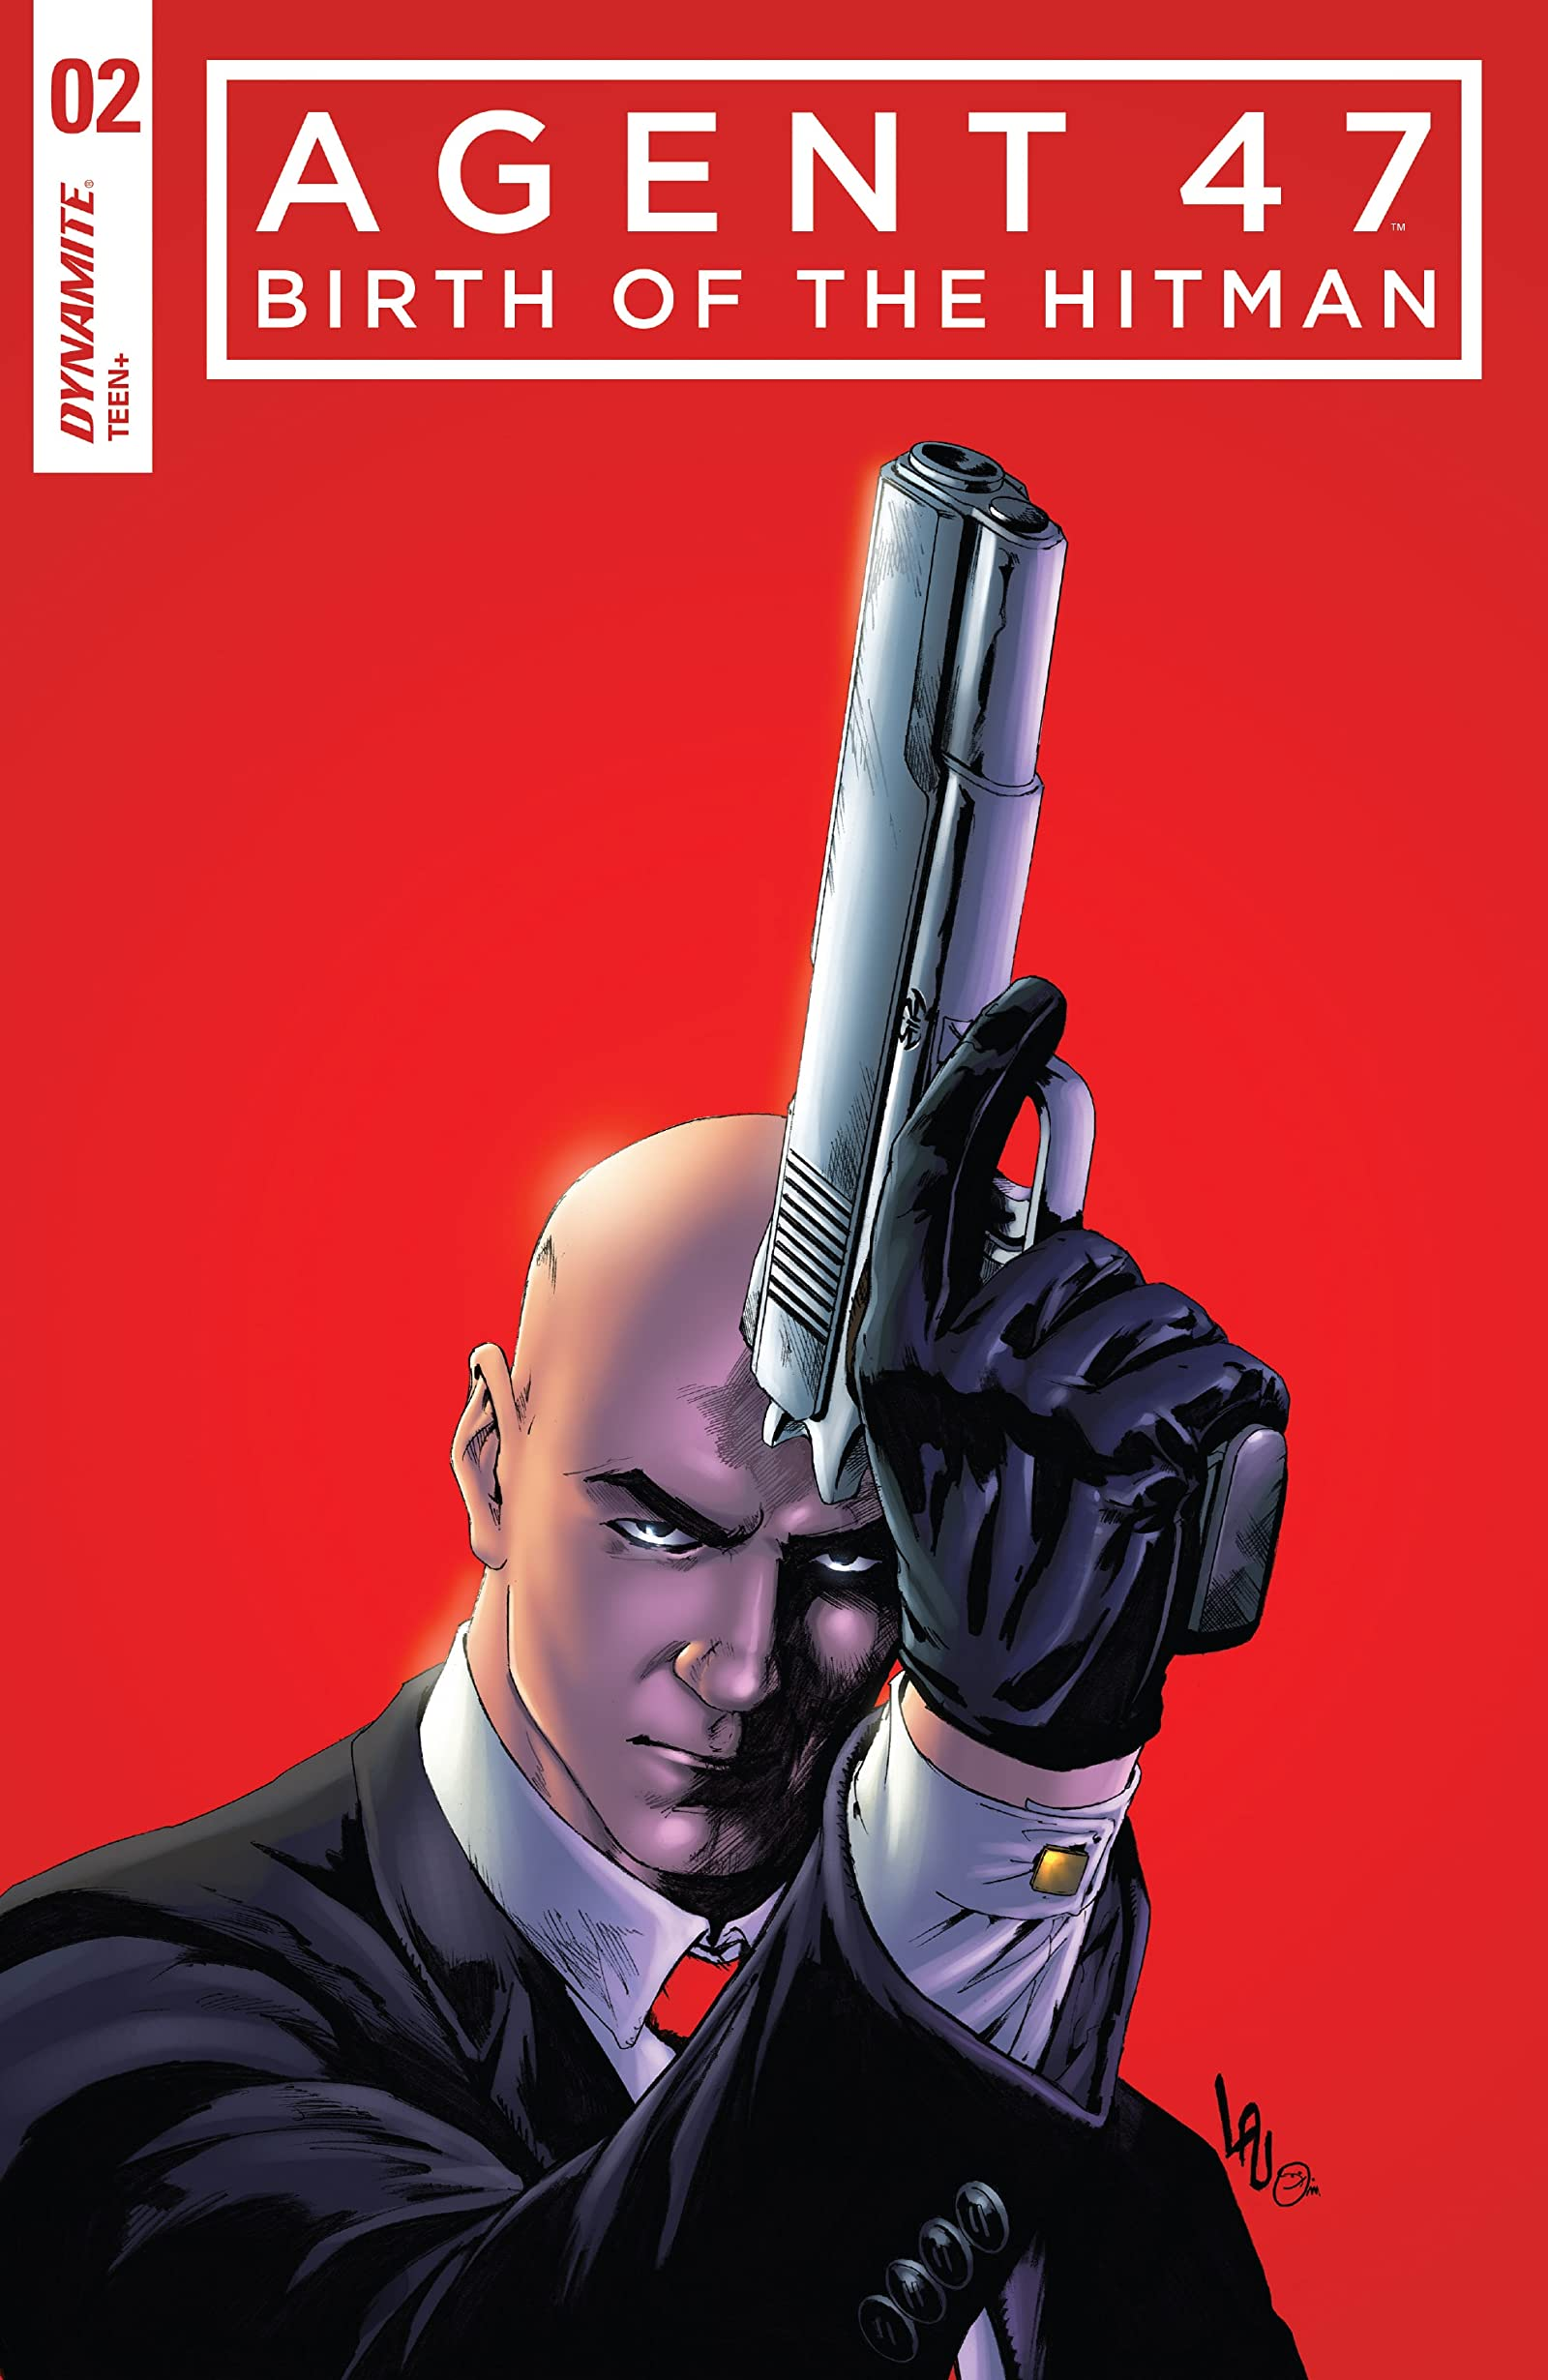 Agent 47 Birth Of The Hitman 2 Comics By Comixology